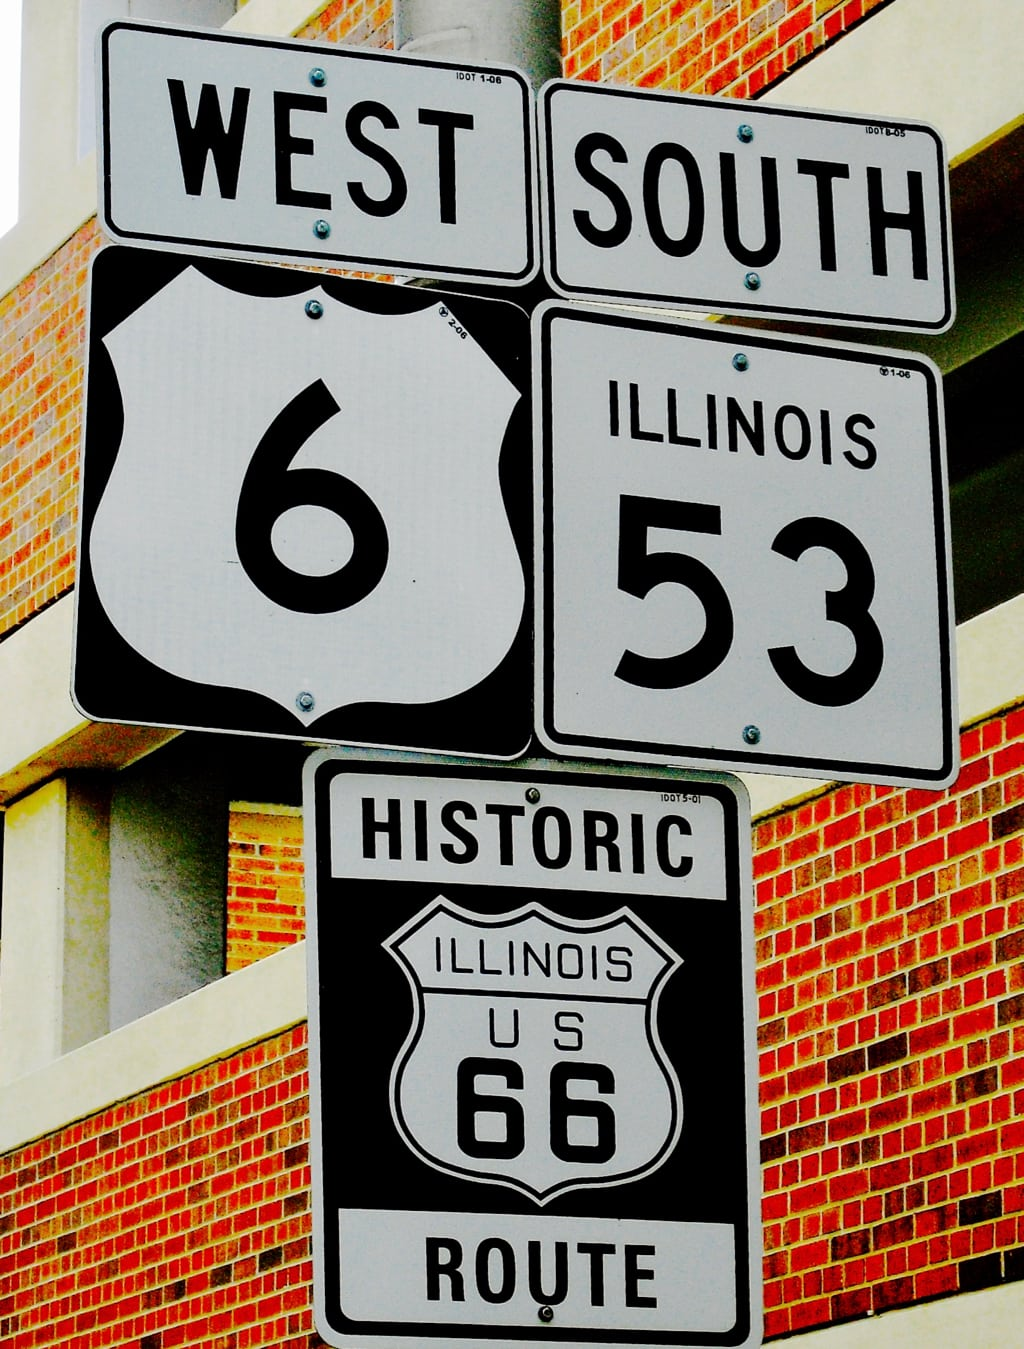 Joliet IL - intersection of US Route 6 and Route 66